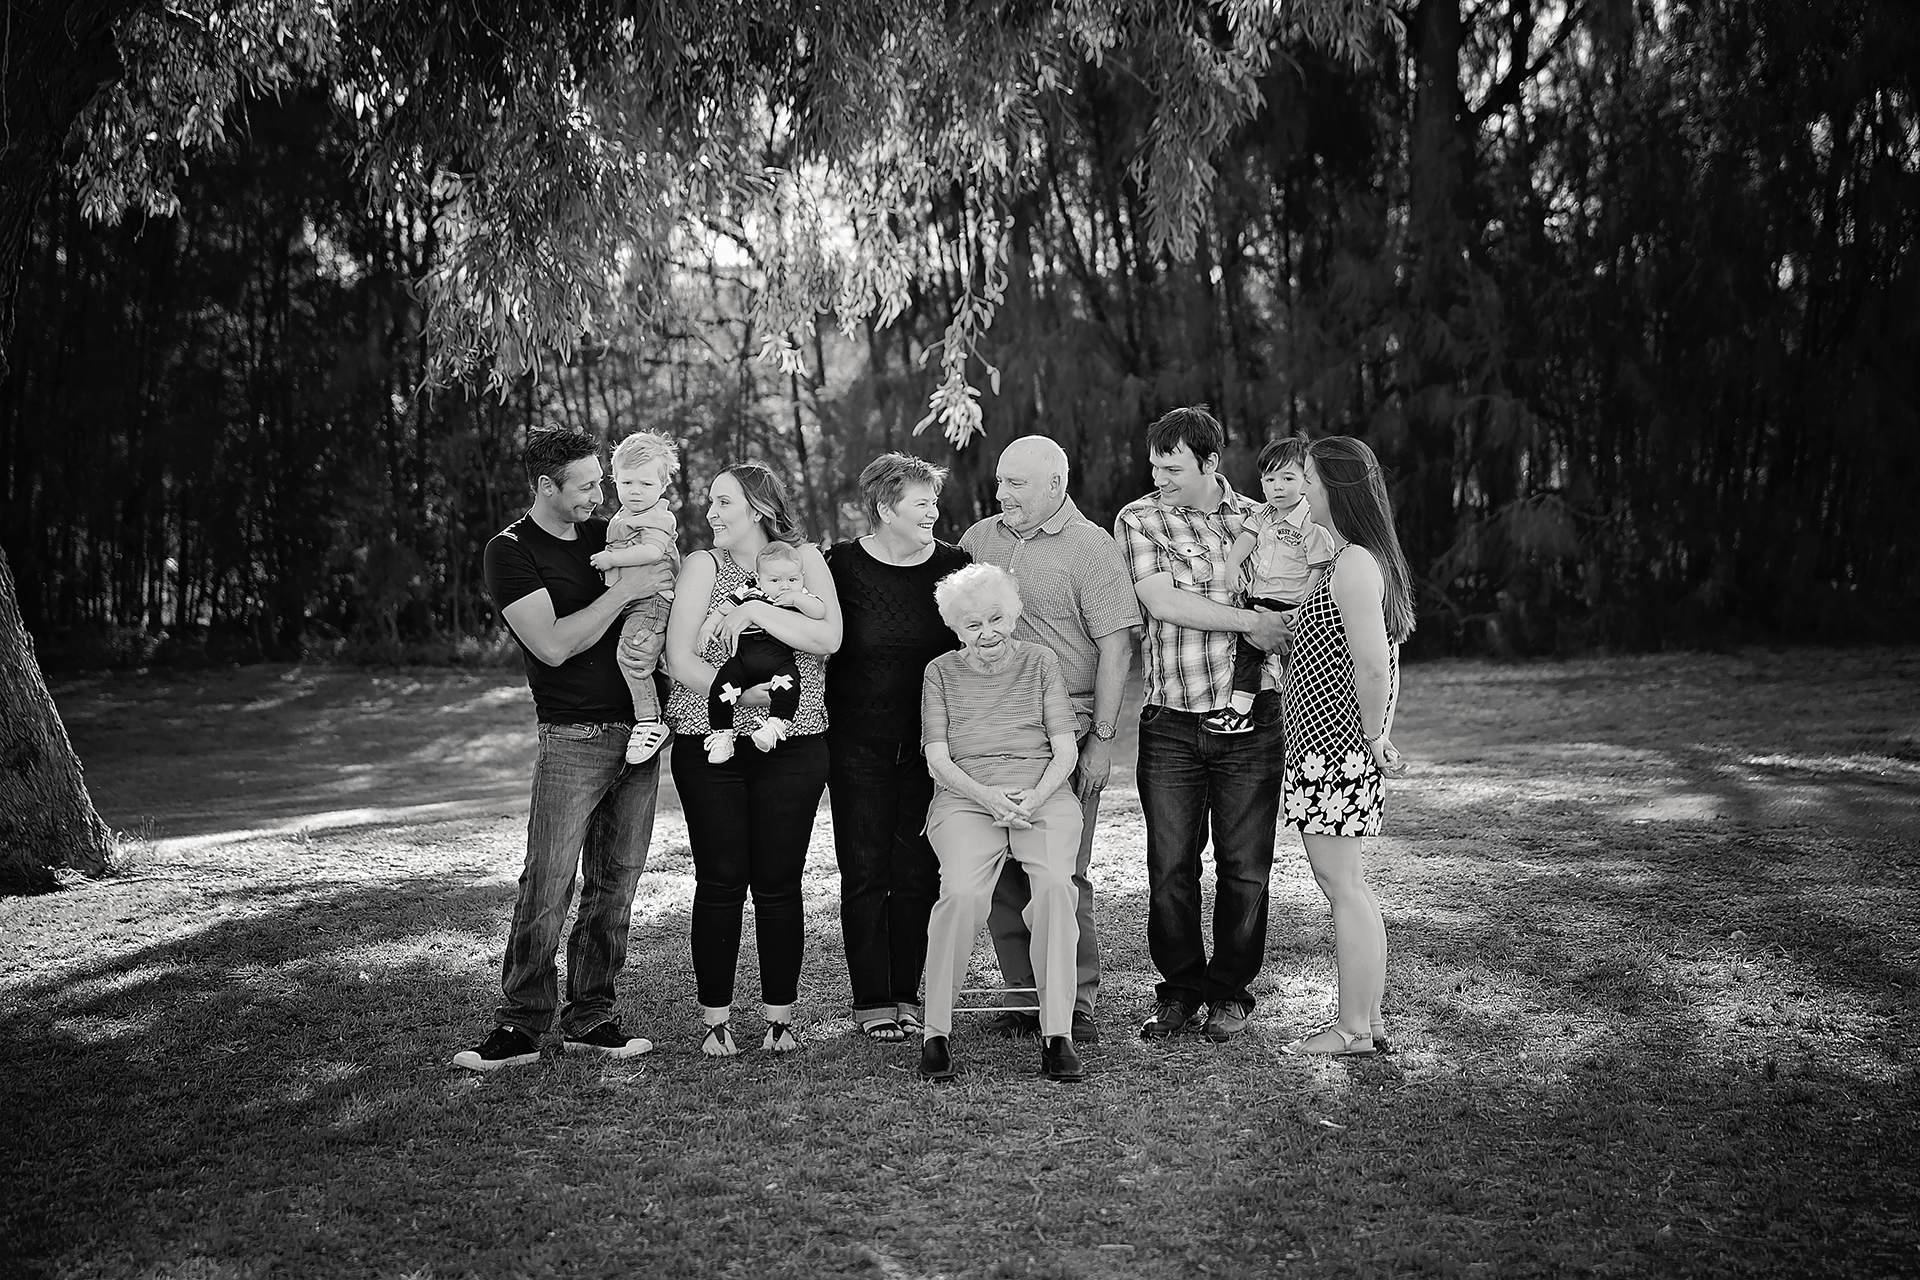 BeilerFamily-3Black&White.jpg